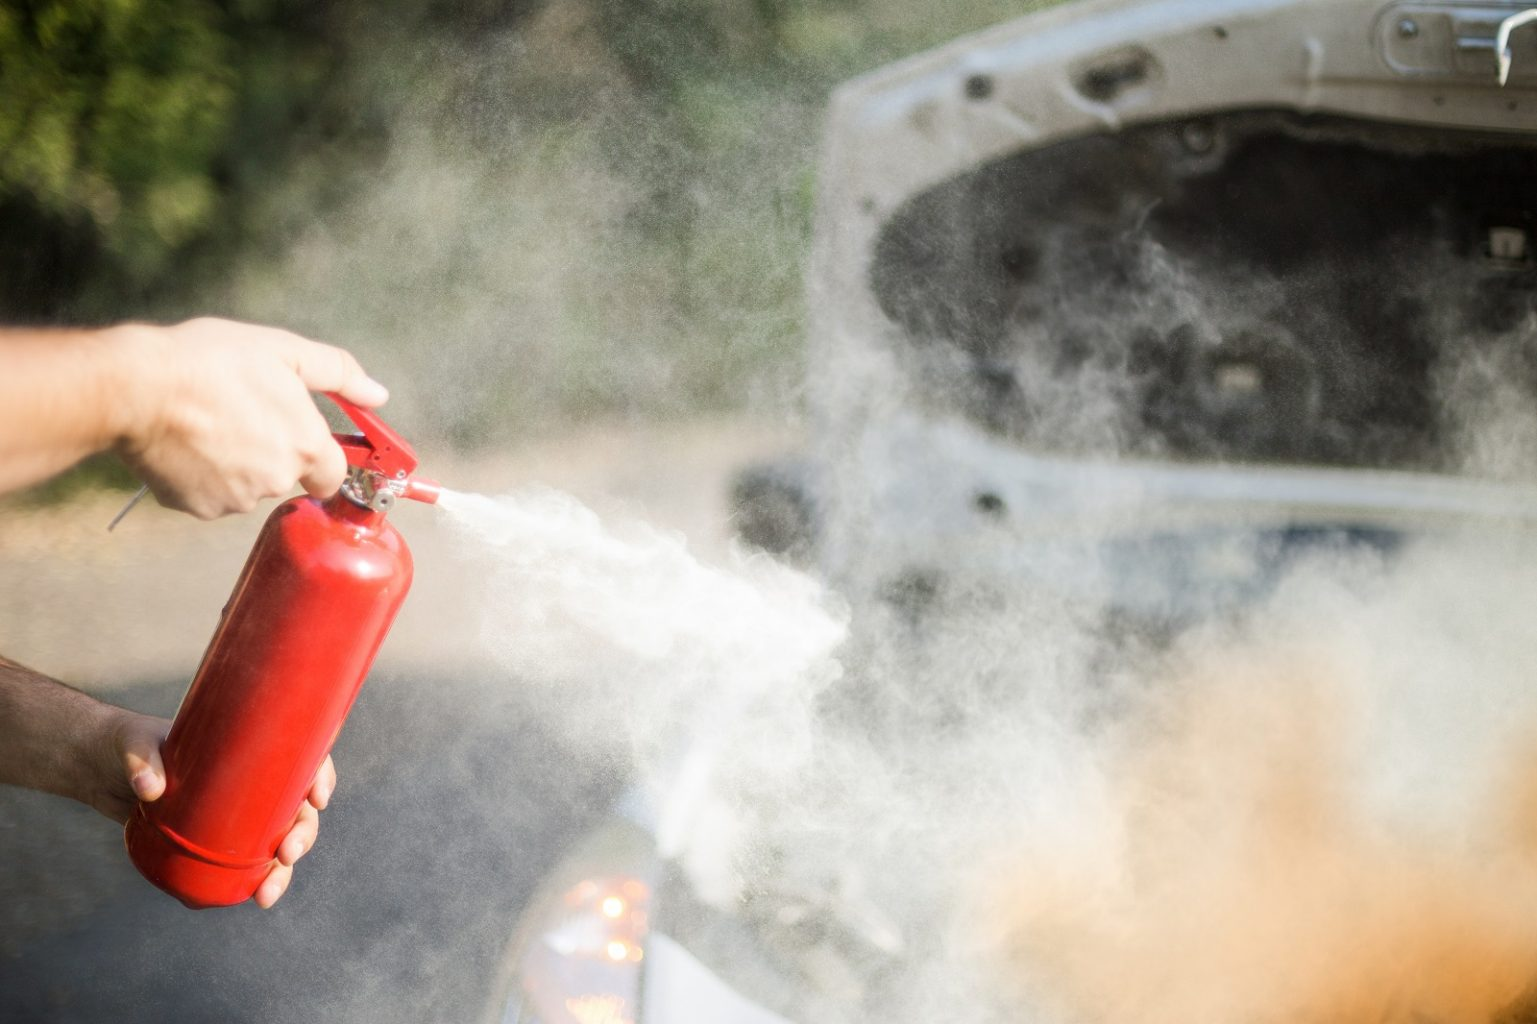 Vehicle Fire Safety Tips: Important Tips to Prevent Car Fires